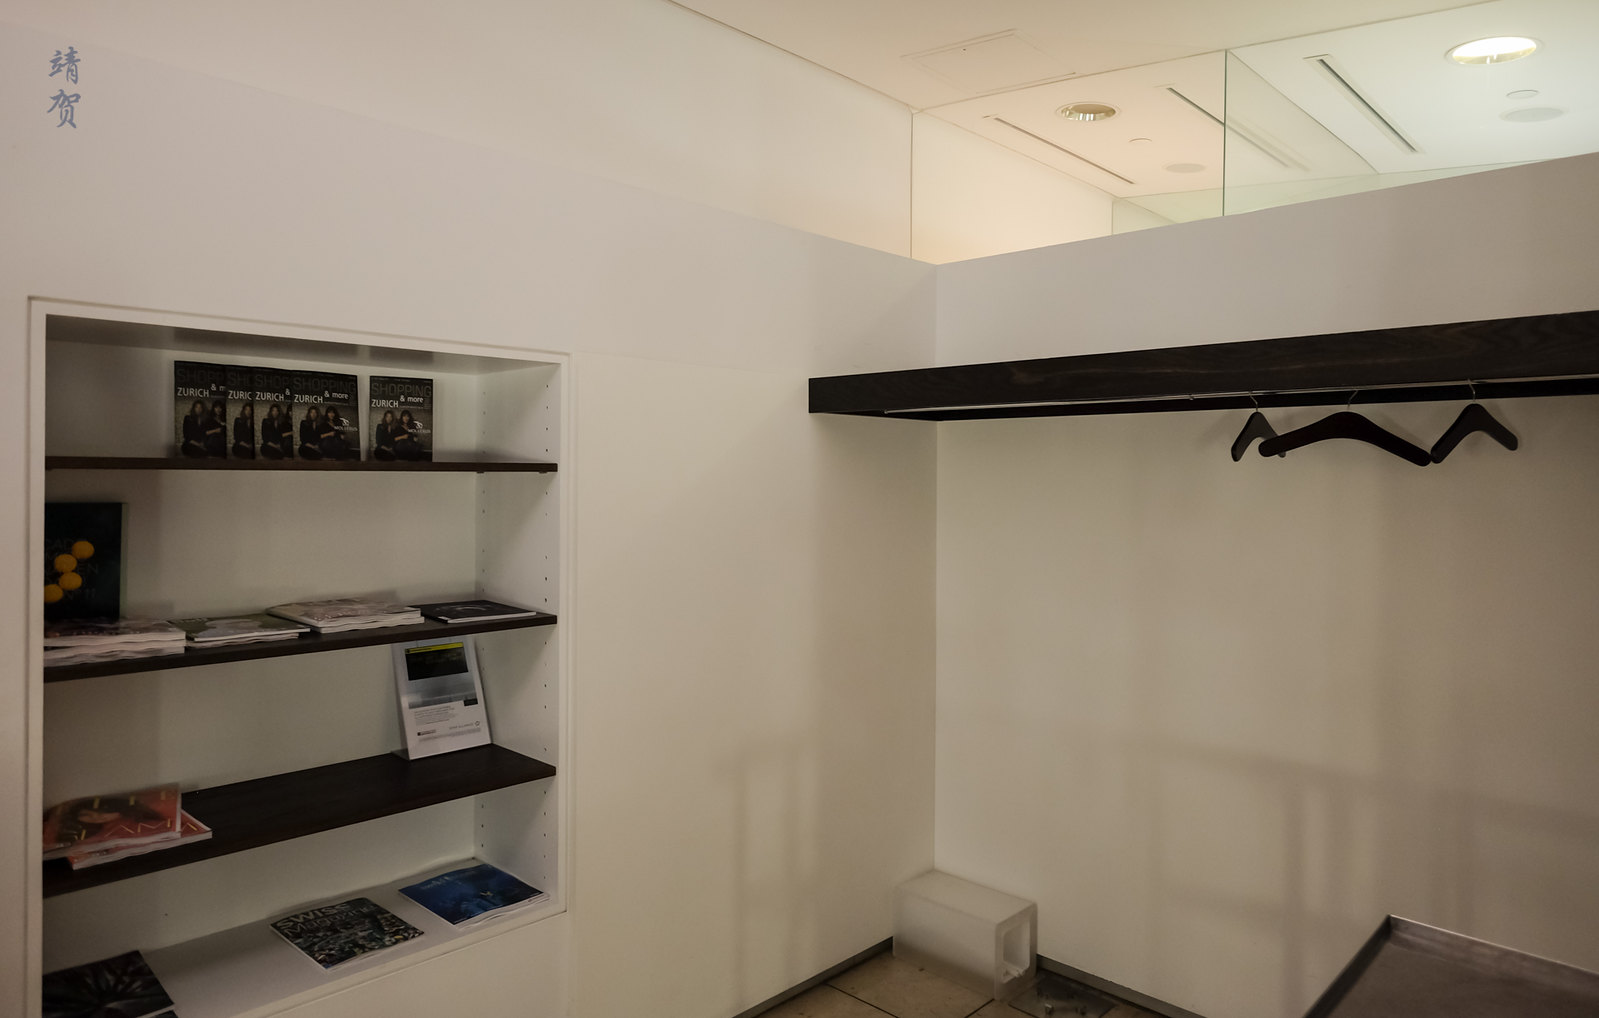 Hangers and storage